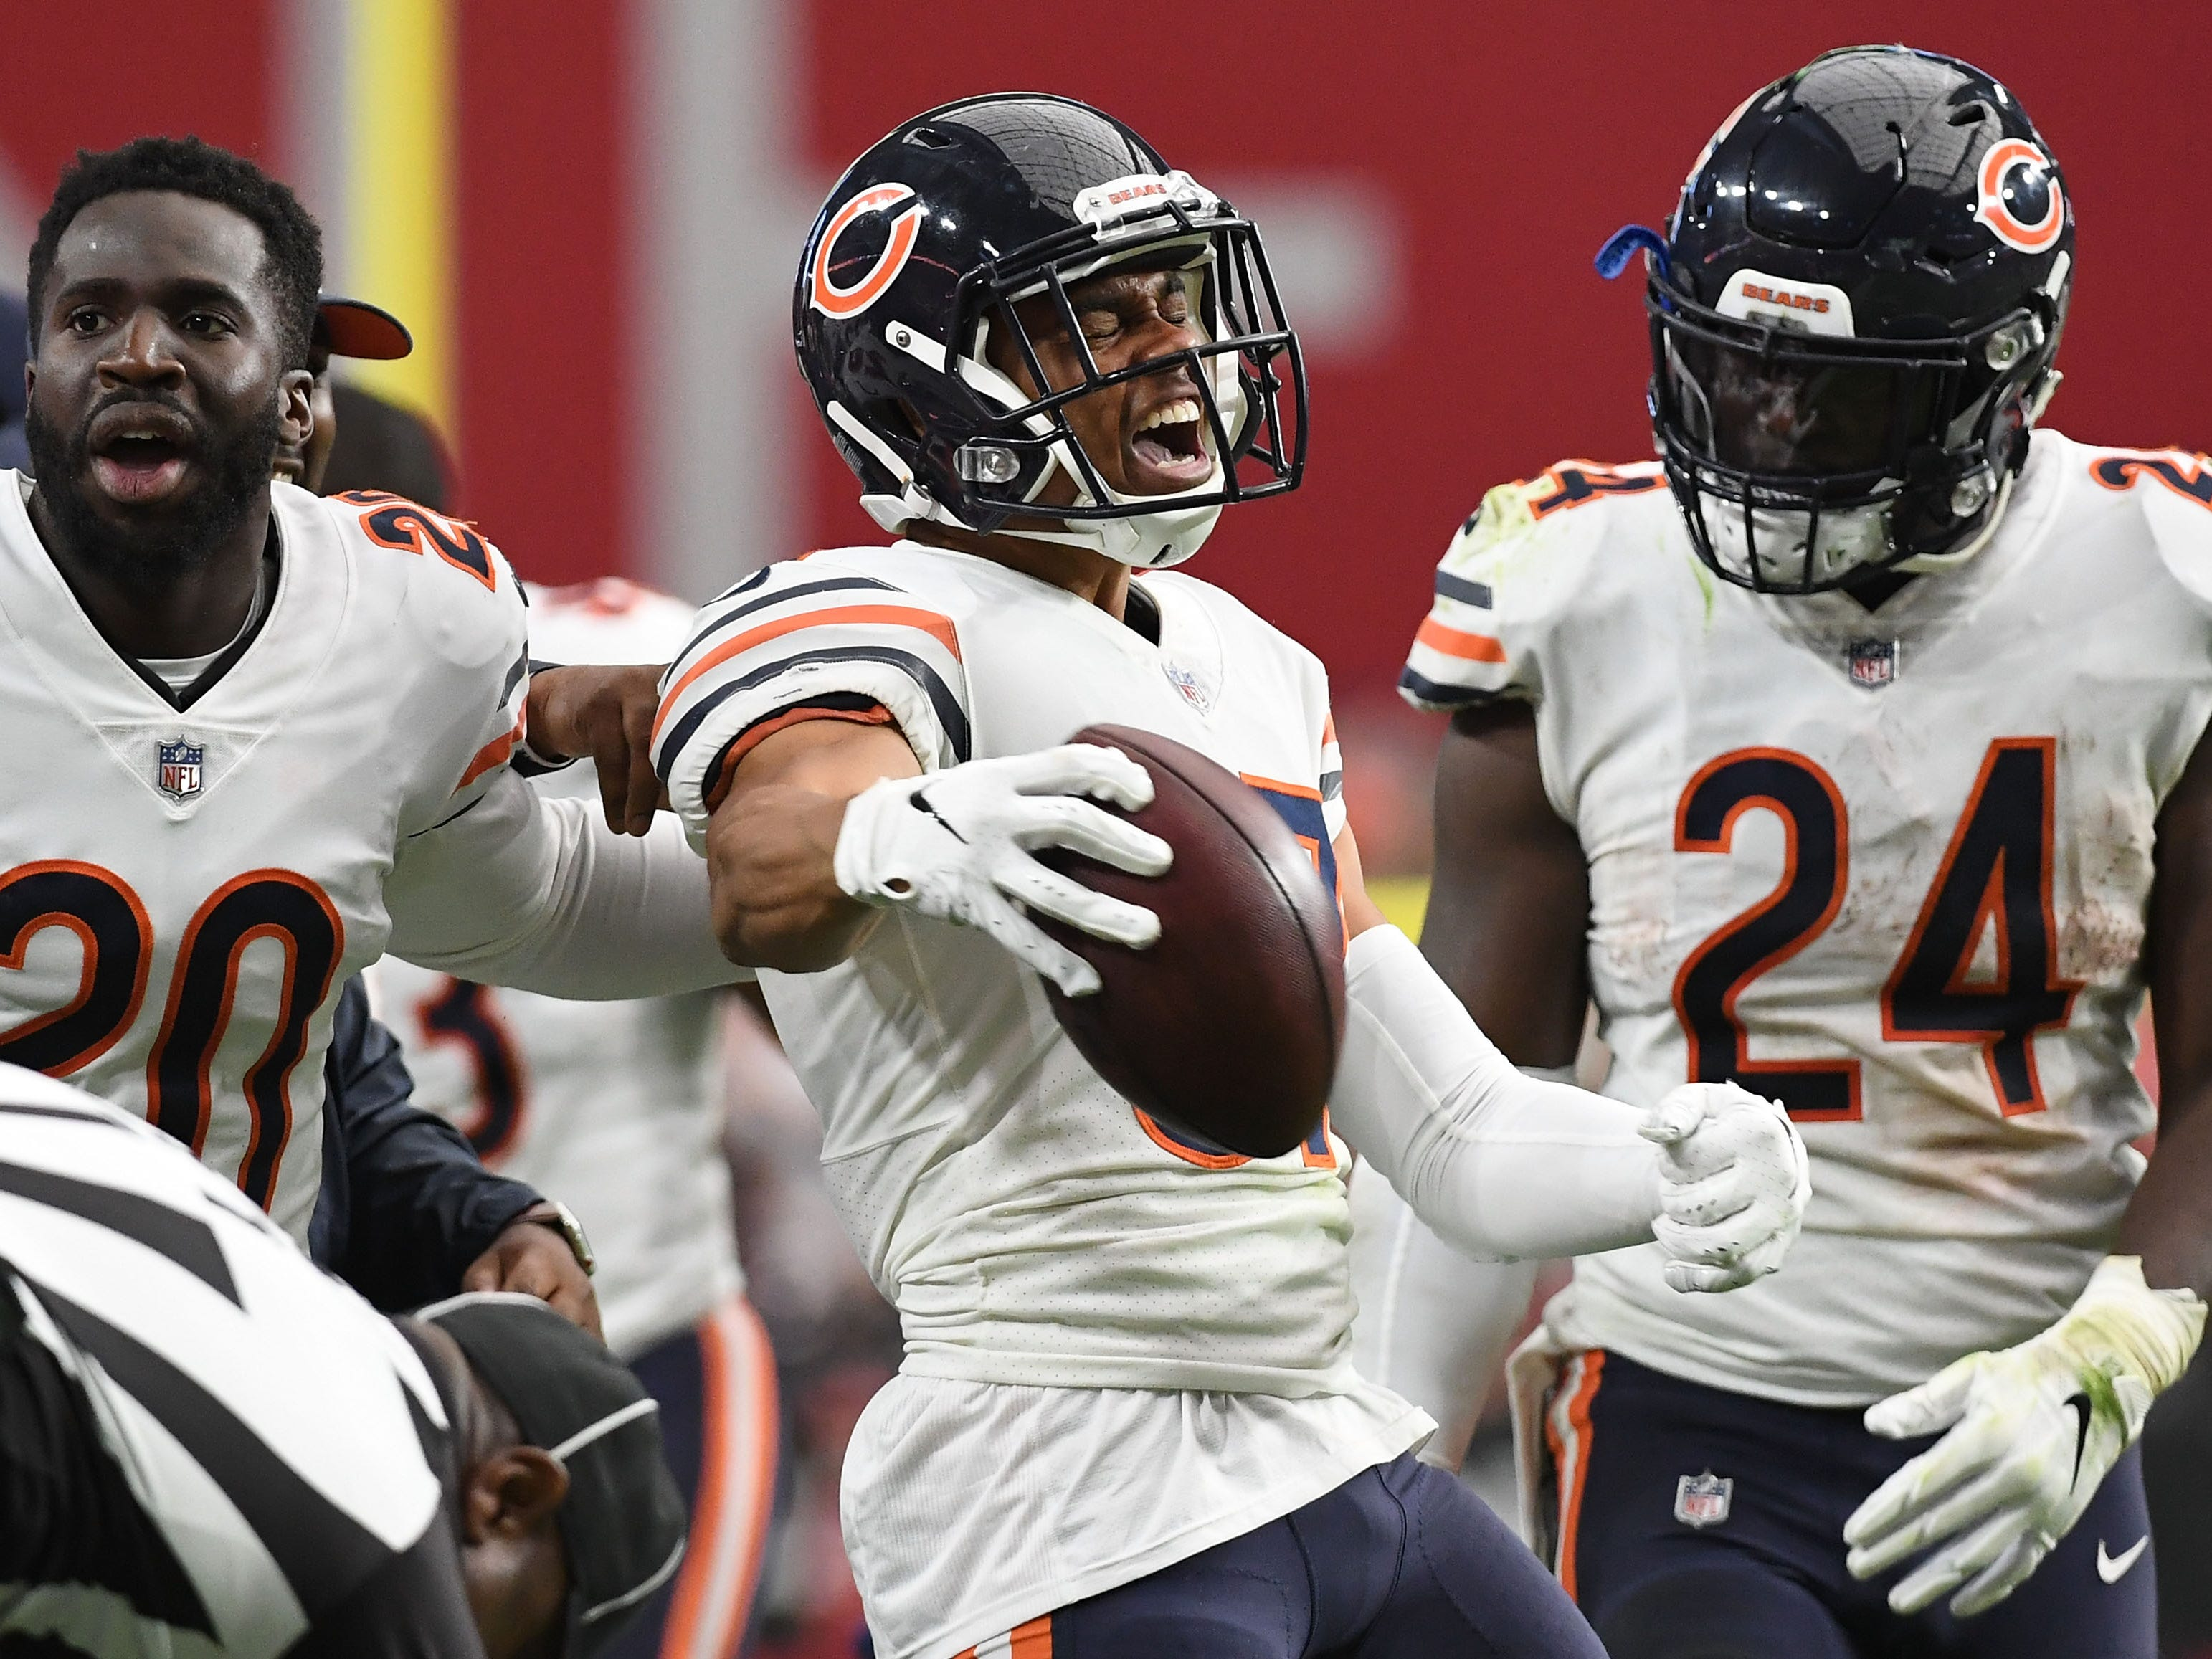 Bryce Callahan, CB, Chicago: A season-ending broken foot will likely put a damper on Callahan's market after a breakout campaign in 2018. Allowing just 56 percent of the passes thrown his direction to be completed, he displayed a comfort level defending receivers both outside and in the slot. He's not a big-time playmaker, but did have a pair of interceptions each of the past two seasons.